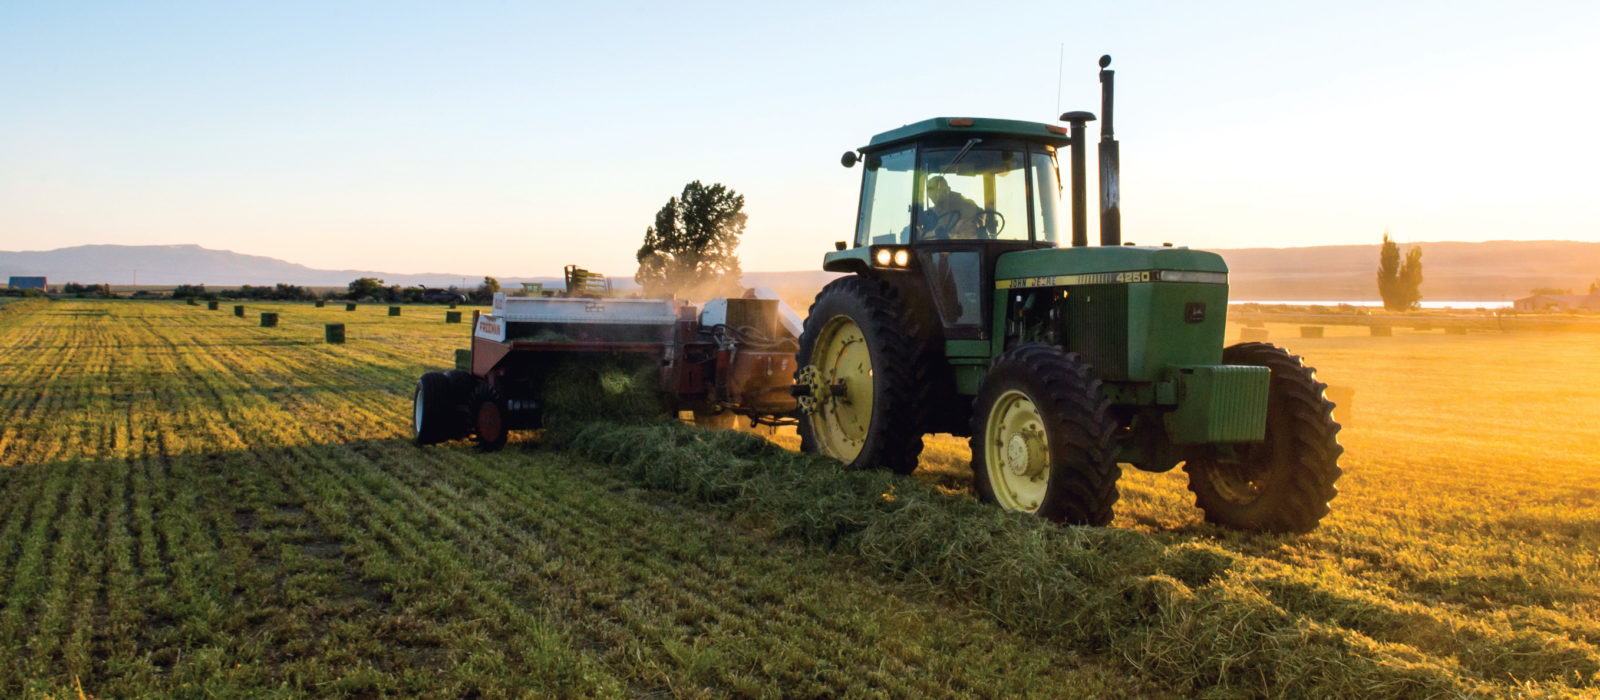 Farmer in tractor harvesting alfalfa